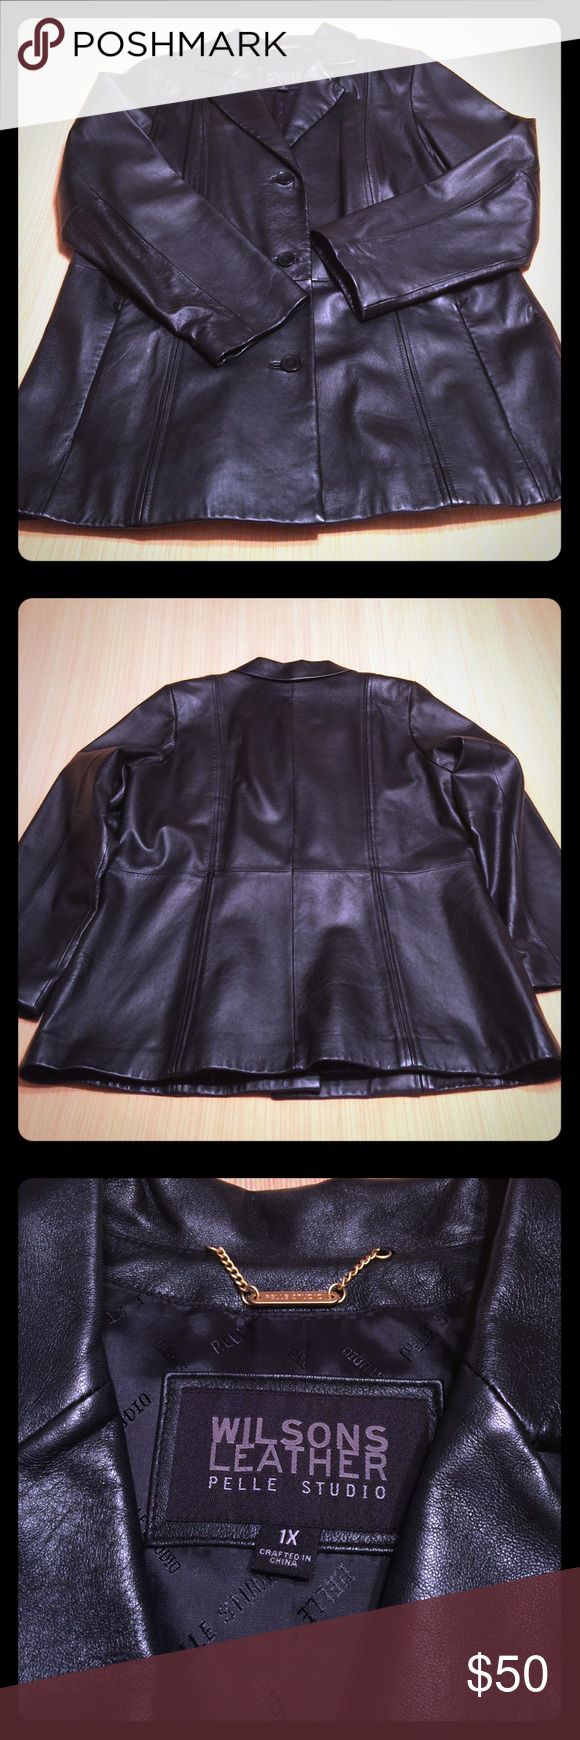 Wilsons Leather Pelle Studio Jacket Wilsons leather